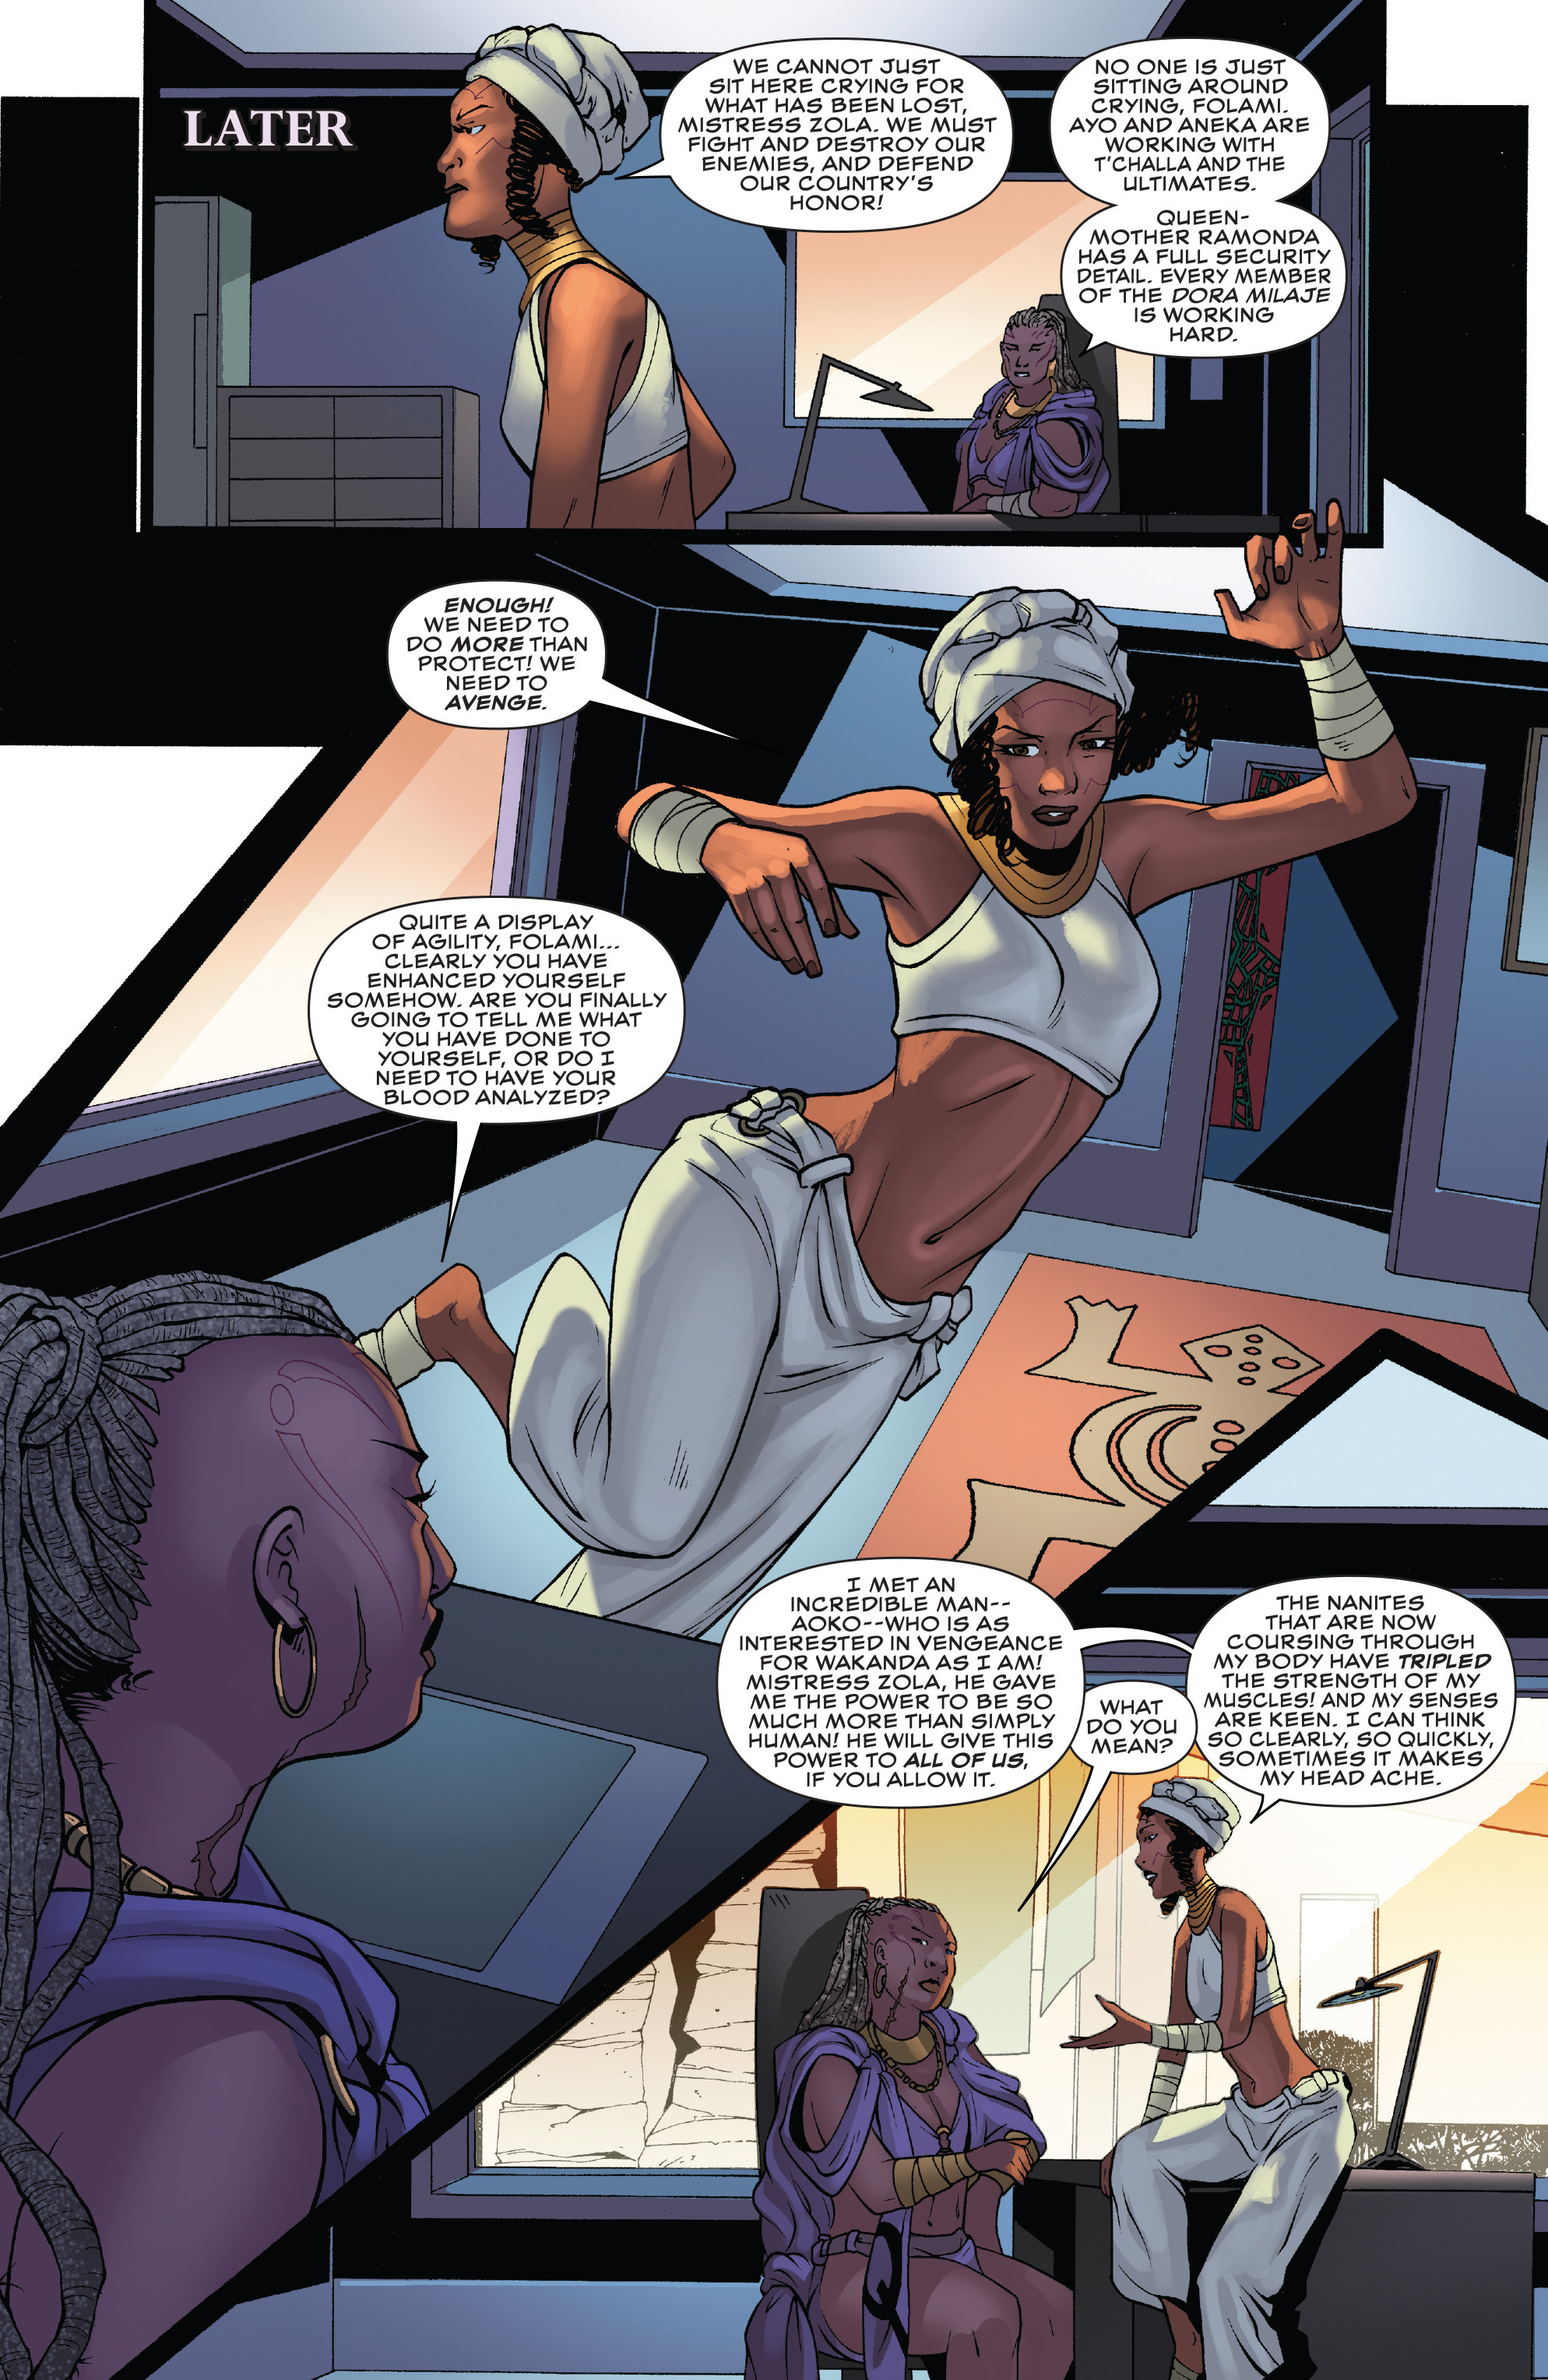 Read online Black Panther: World of Wakanda comic -  Issue #4 - 6